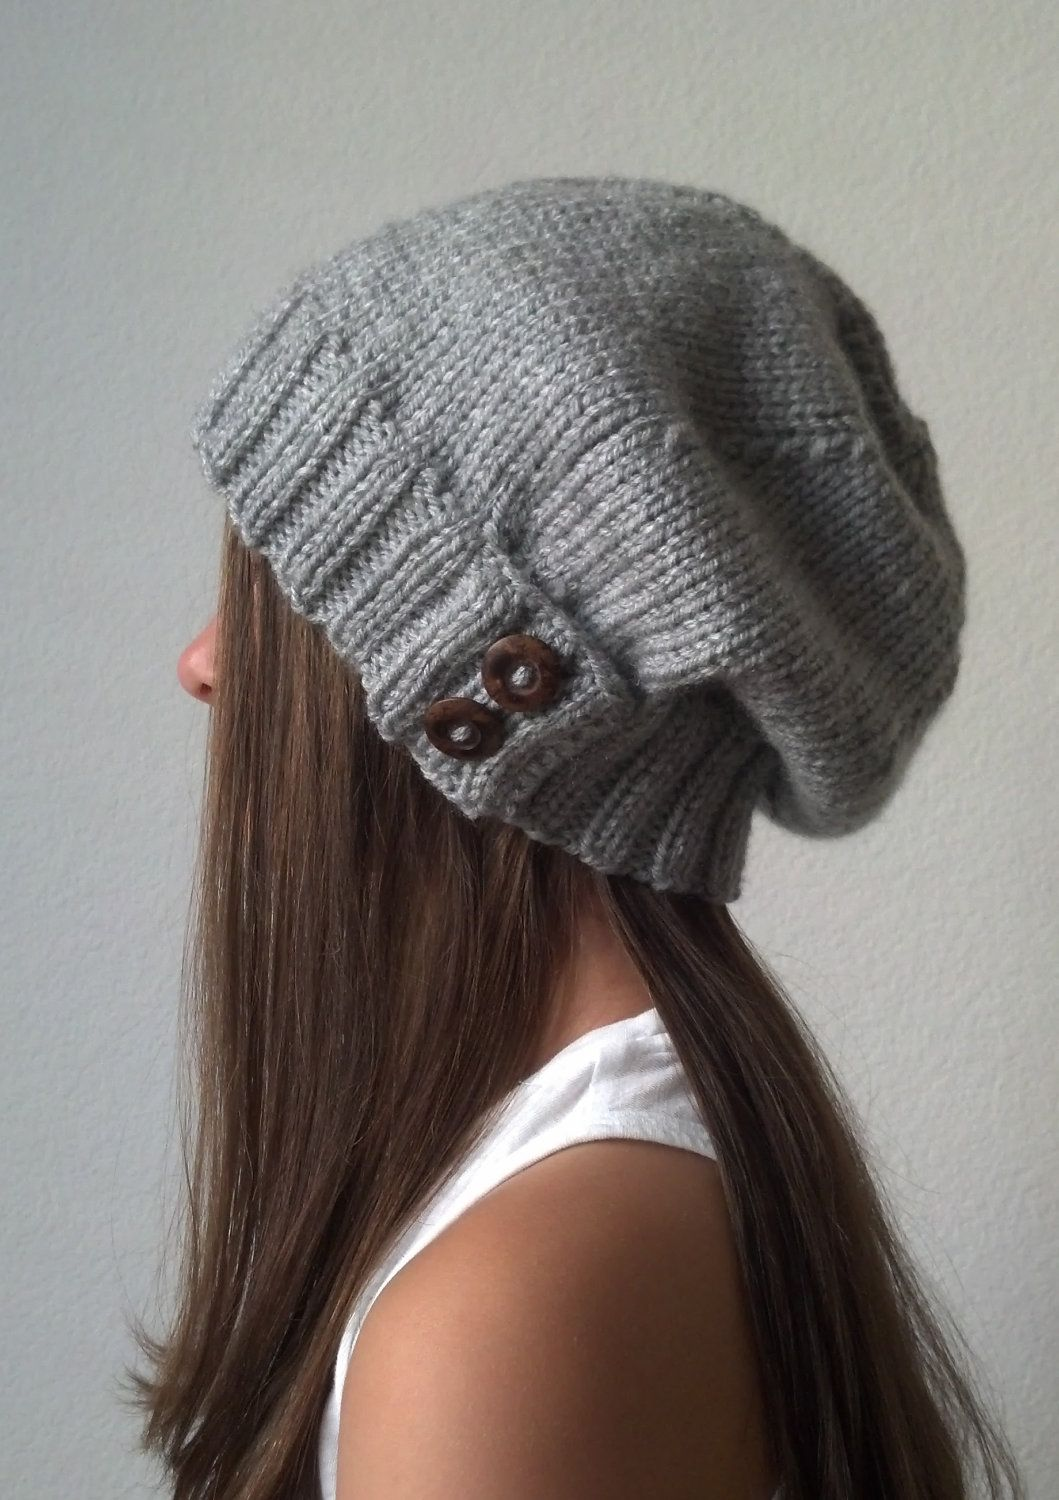 aadf632dd82 Knit slouchy hat - HEATHER GRAY (more colors available - made to order).   35.00